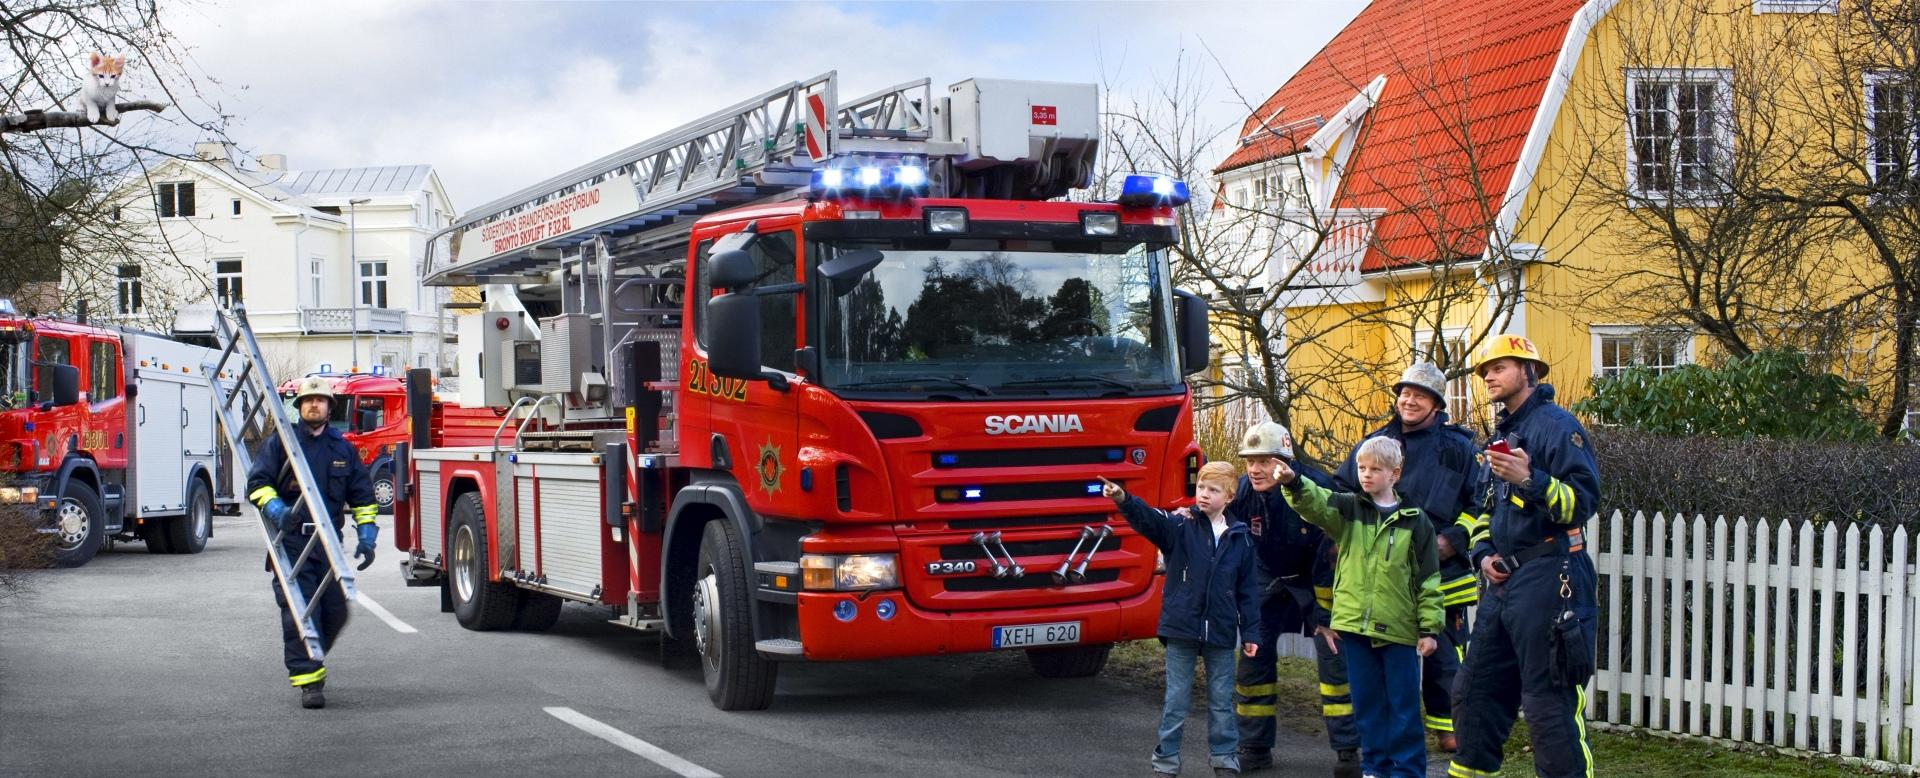 Scania Fire Truck wallpapers HD quality